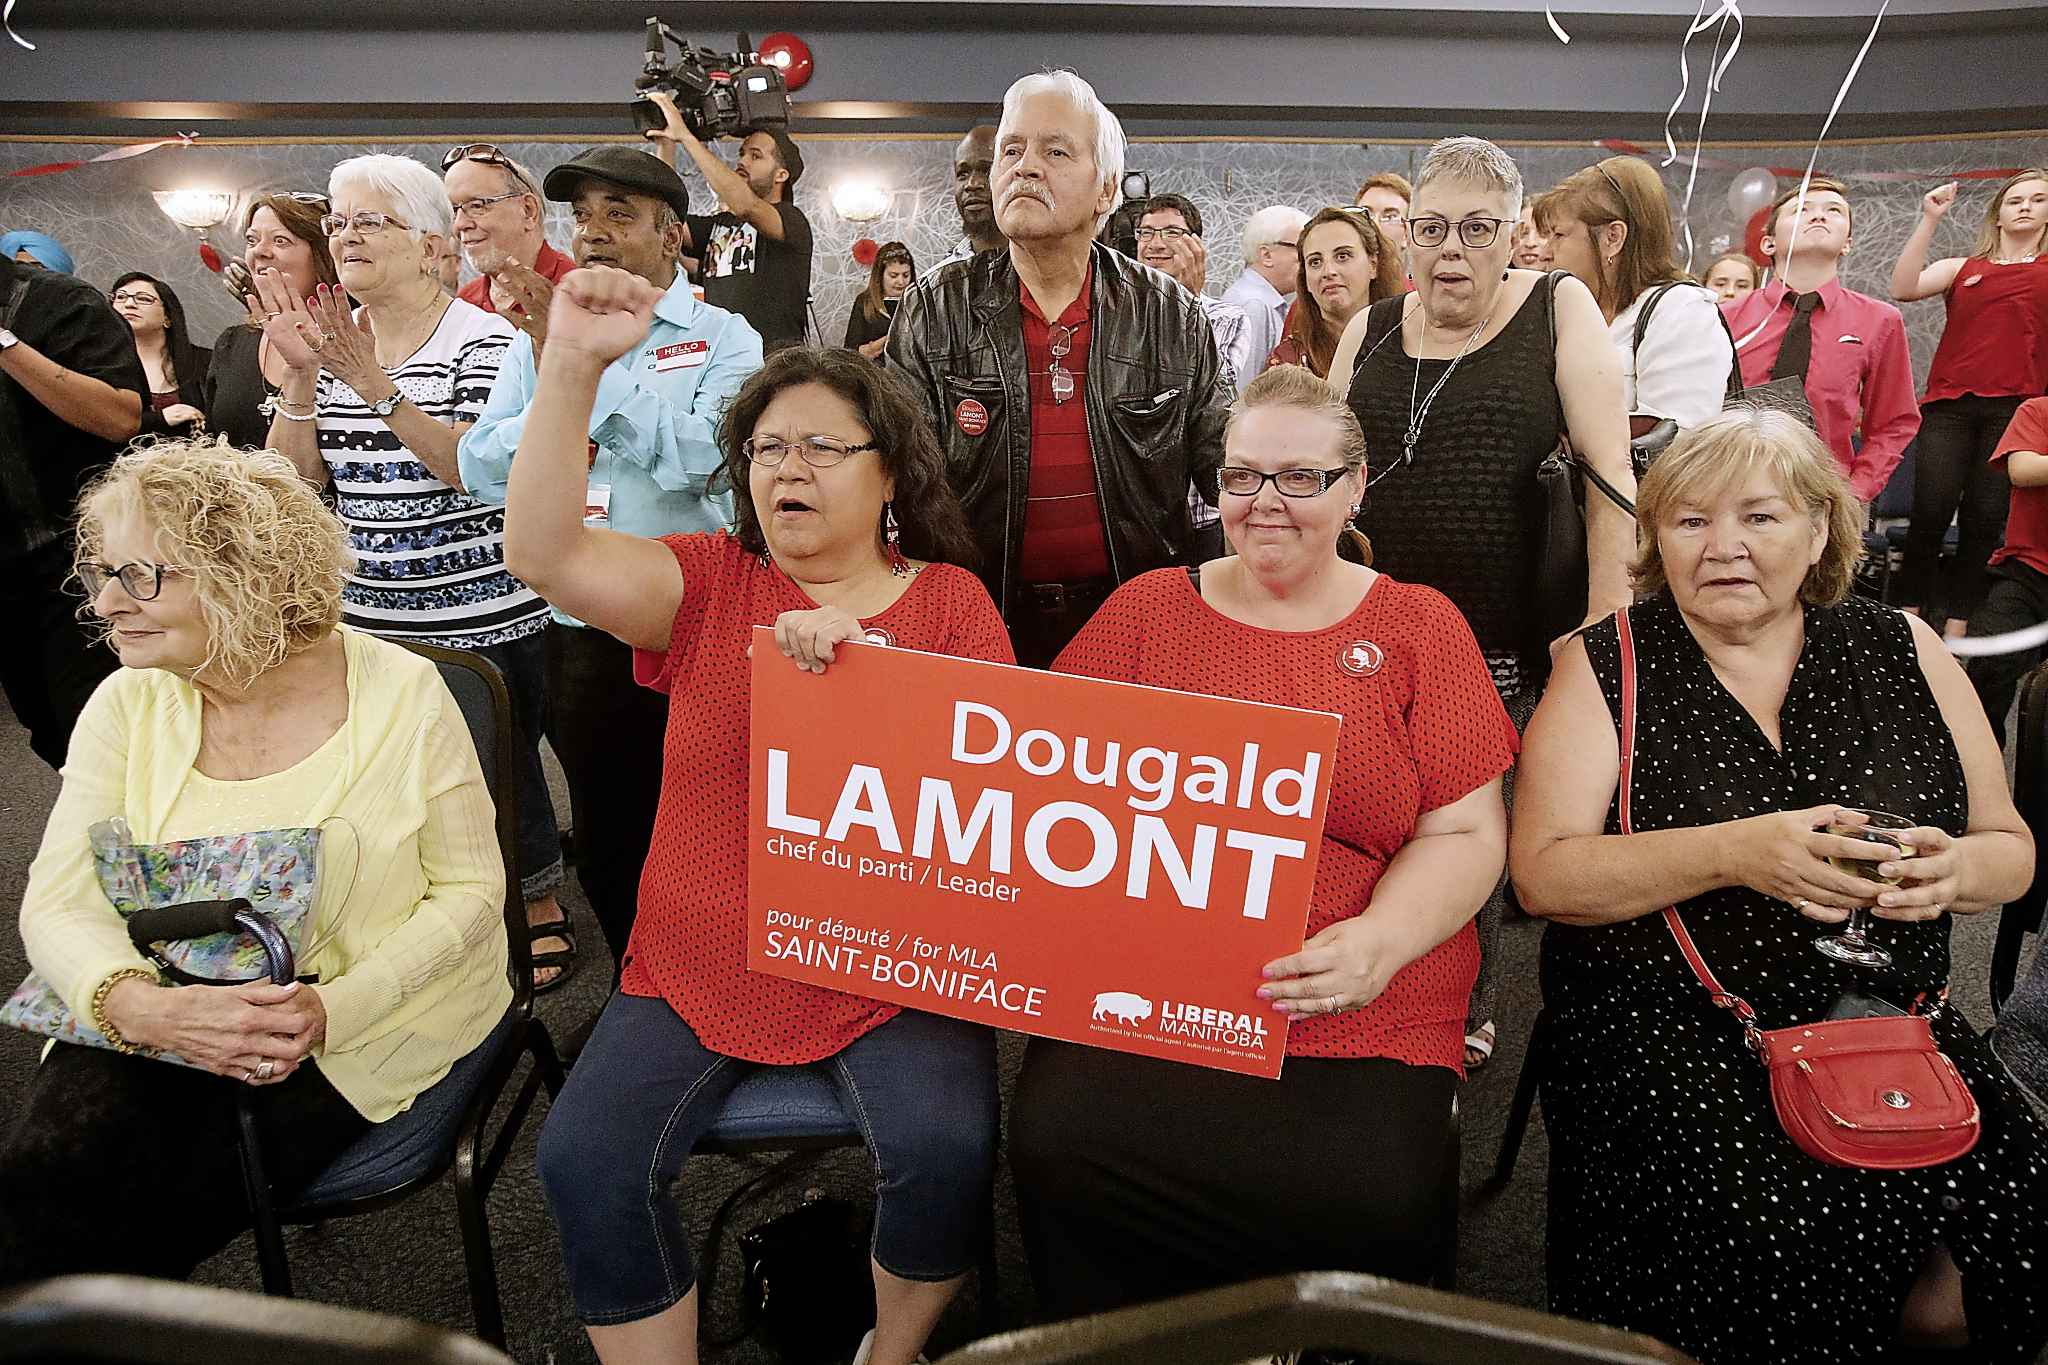 Supporters celebrate as they see positive results come in for Dougald Lamont, leader of the Manitoba Liberal Party, in the St. Boniface byelection Tuesday.